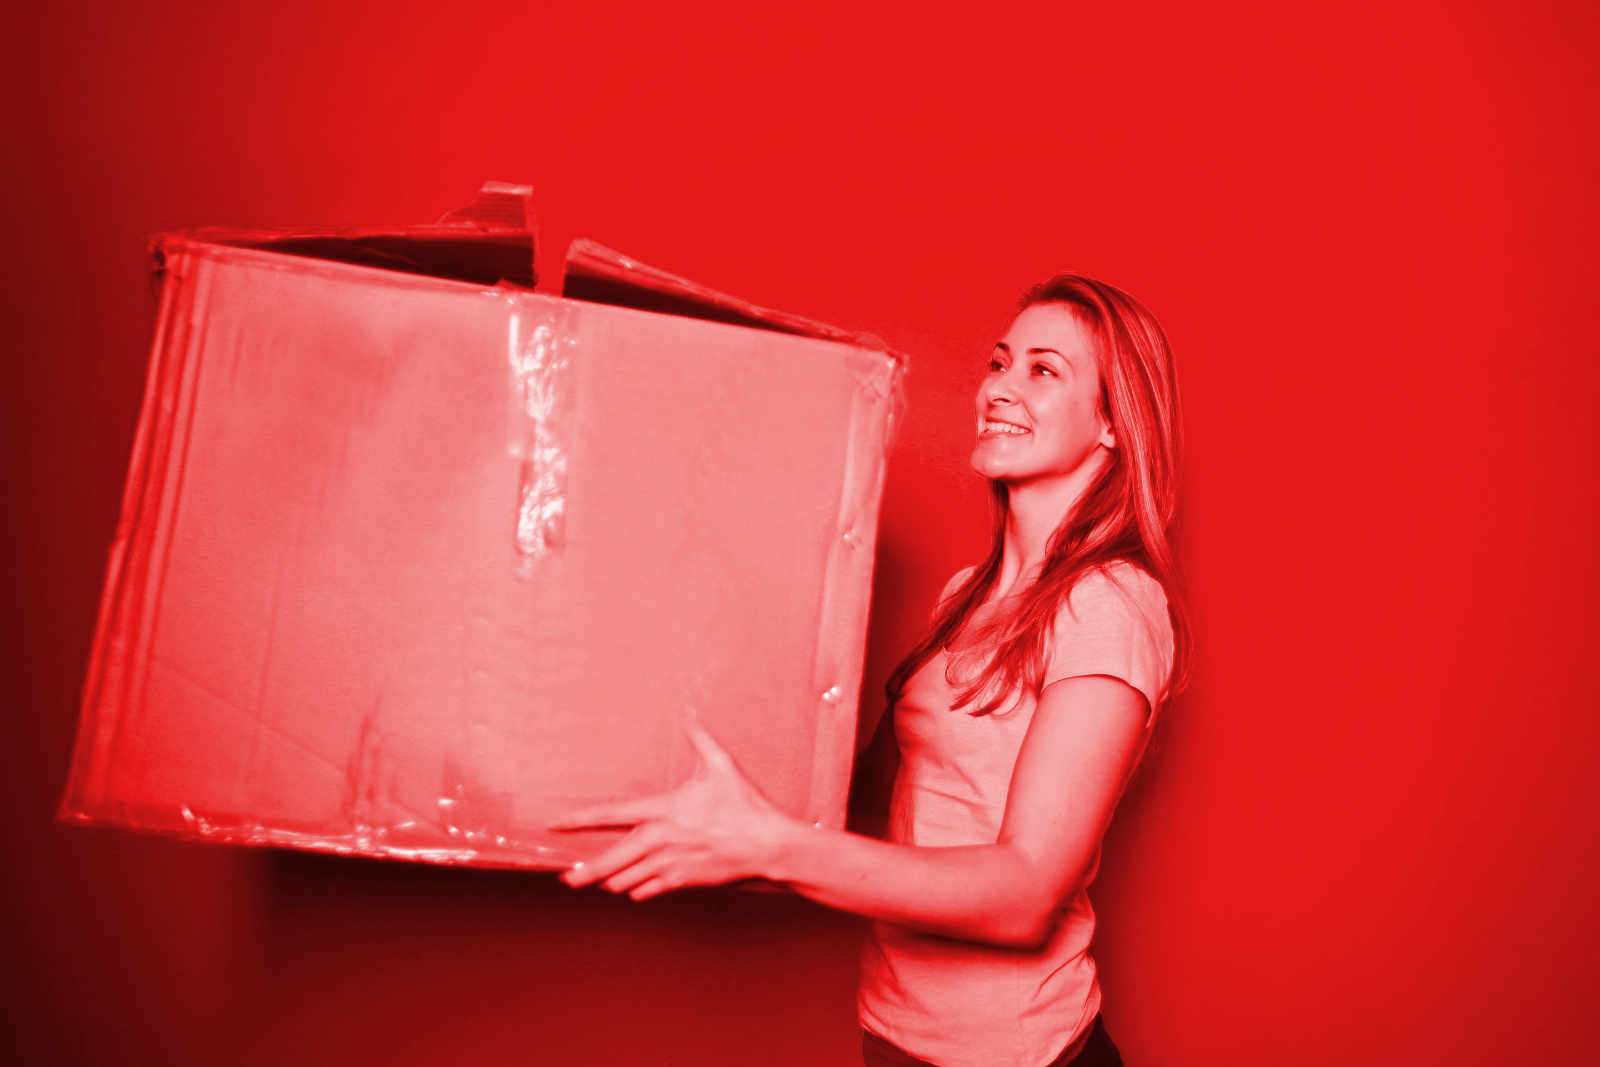 When should you get self storage? - Here's what to consider